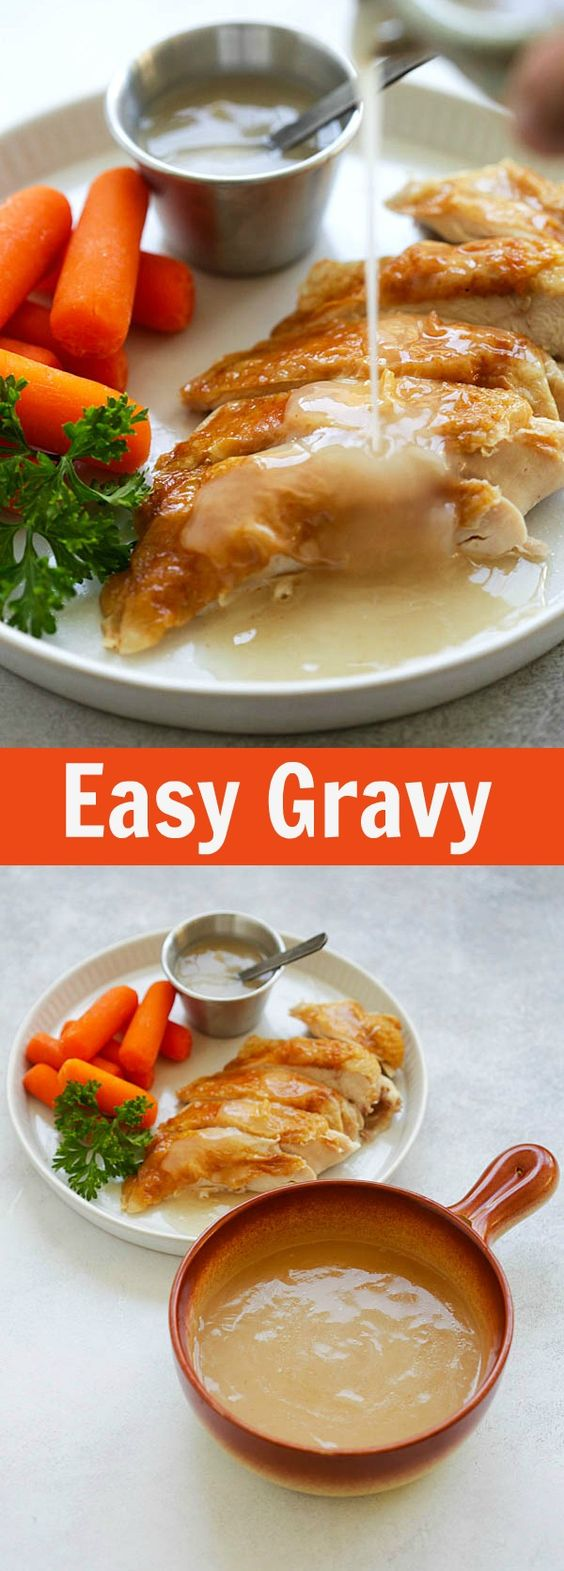 Easy Gravy - quick homemade gravy with only 4 ingredients. This gravy is great for turkey, chicken, pork, steak and potaotes. So good | rasamalaysia.com